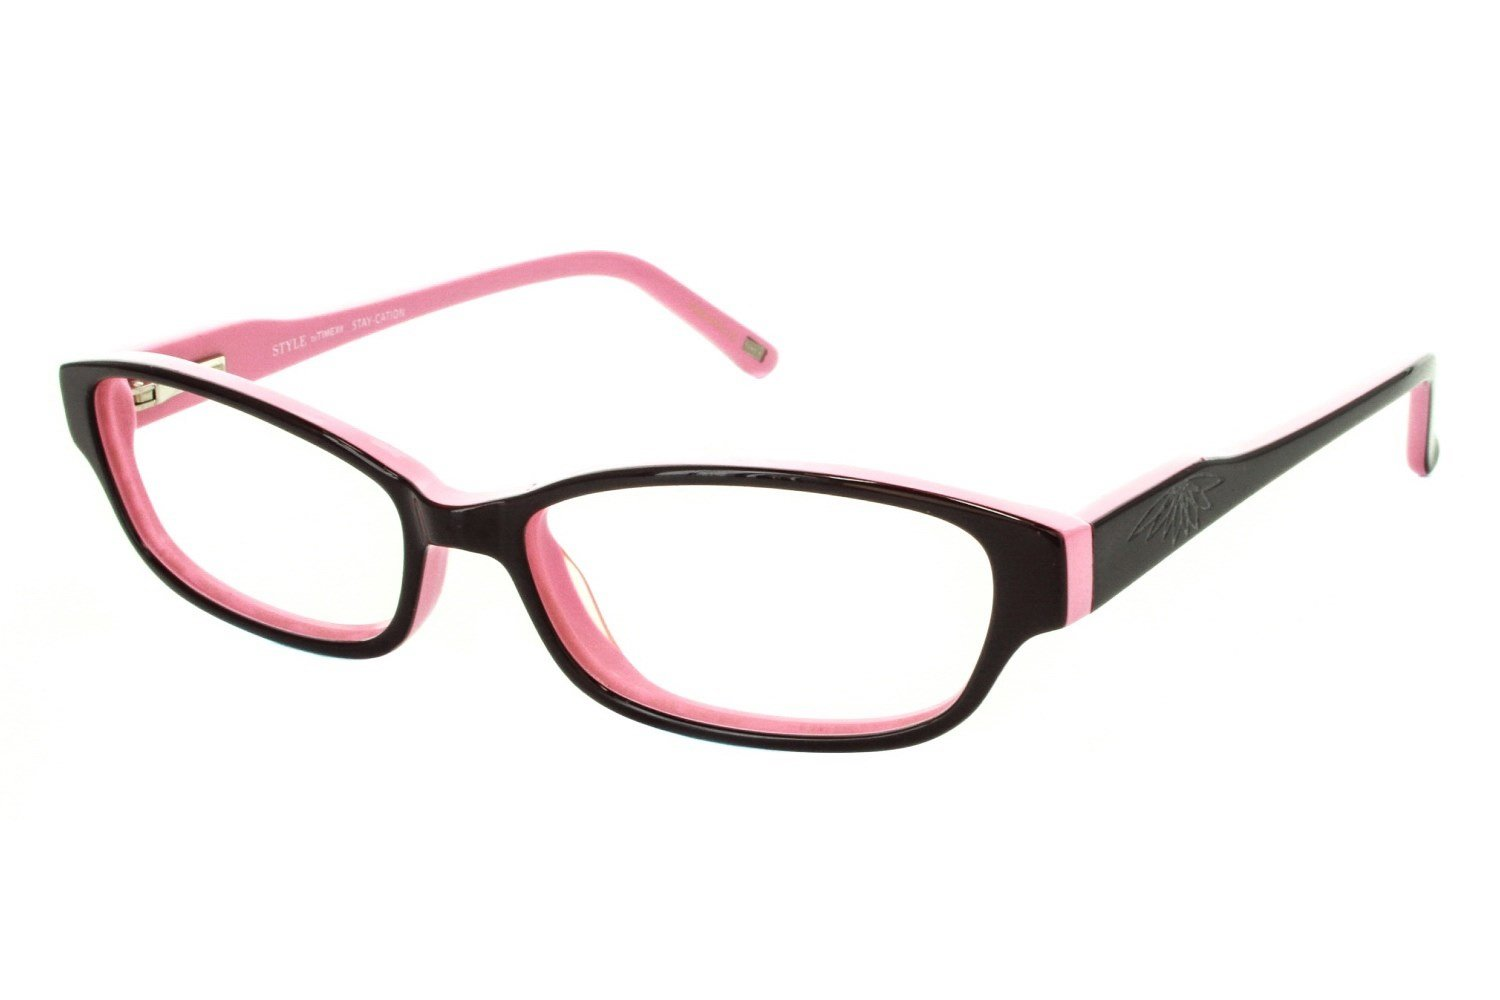 Eyeglass Frame Lookup : Designer Womens Eyeglasses Frame - Search